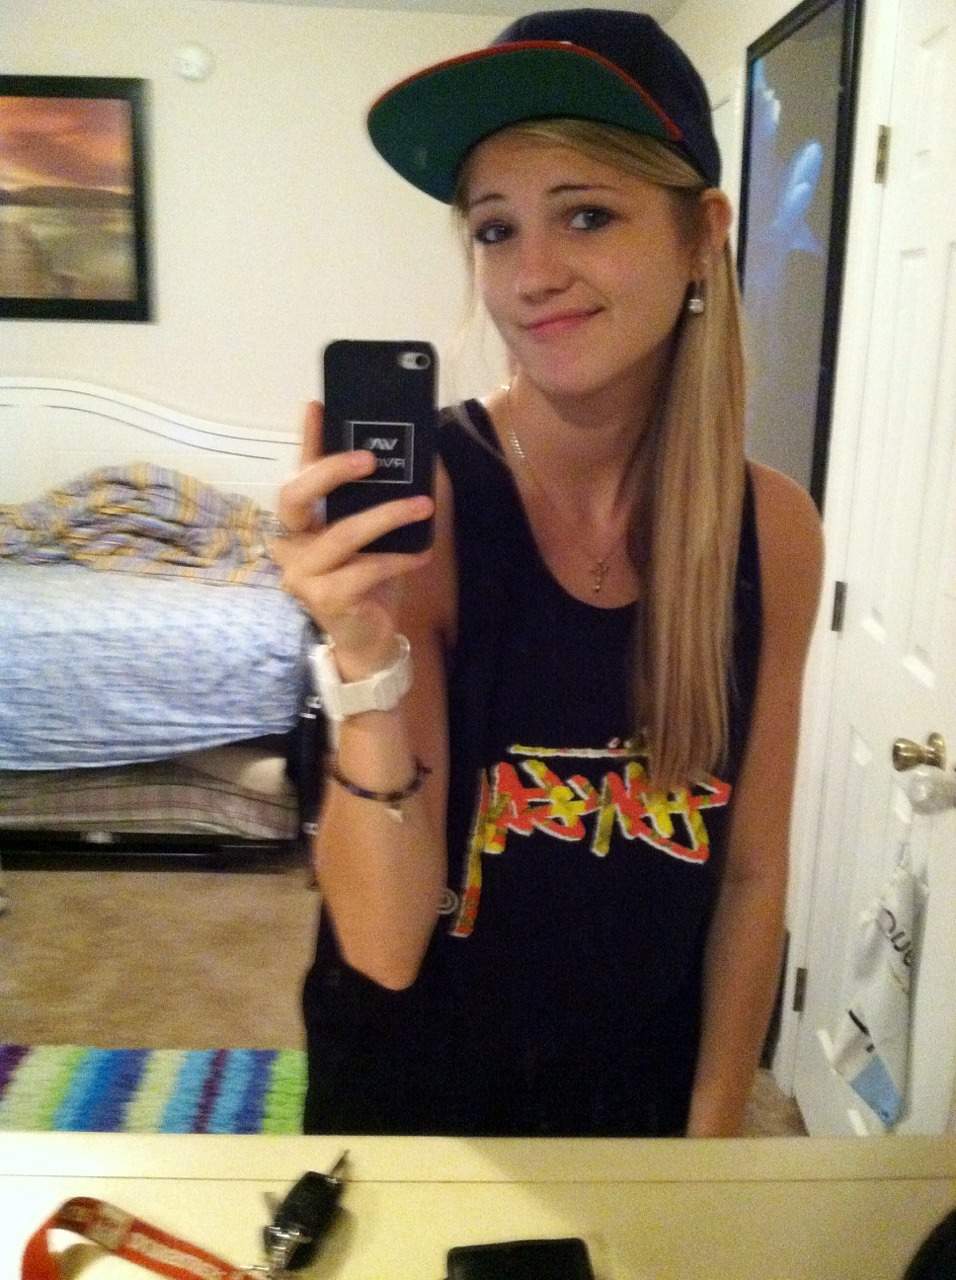 Reppin that stussy bout to get outta this house though🙌